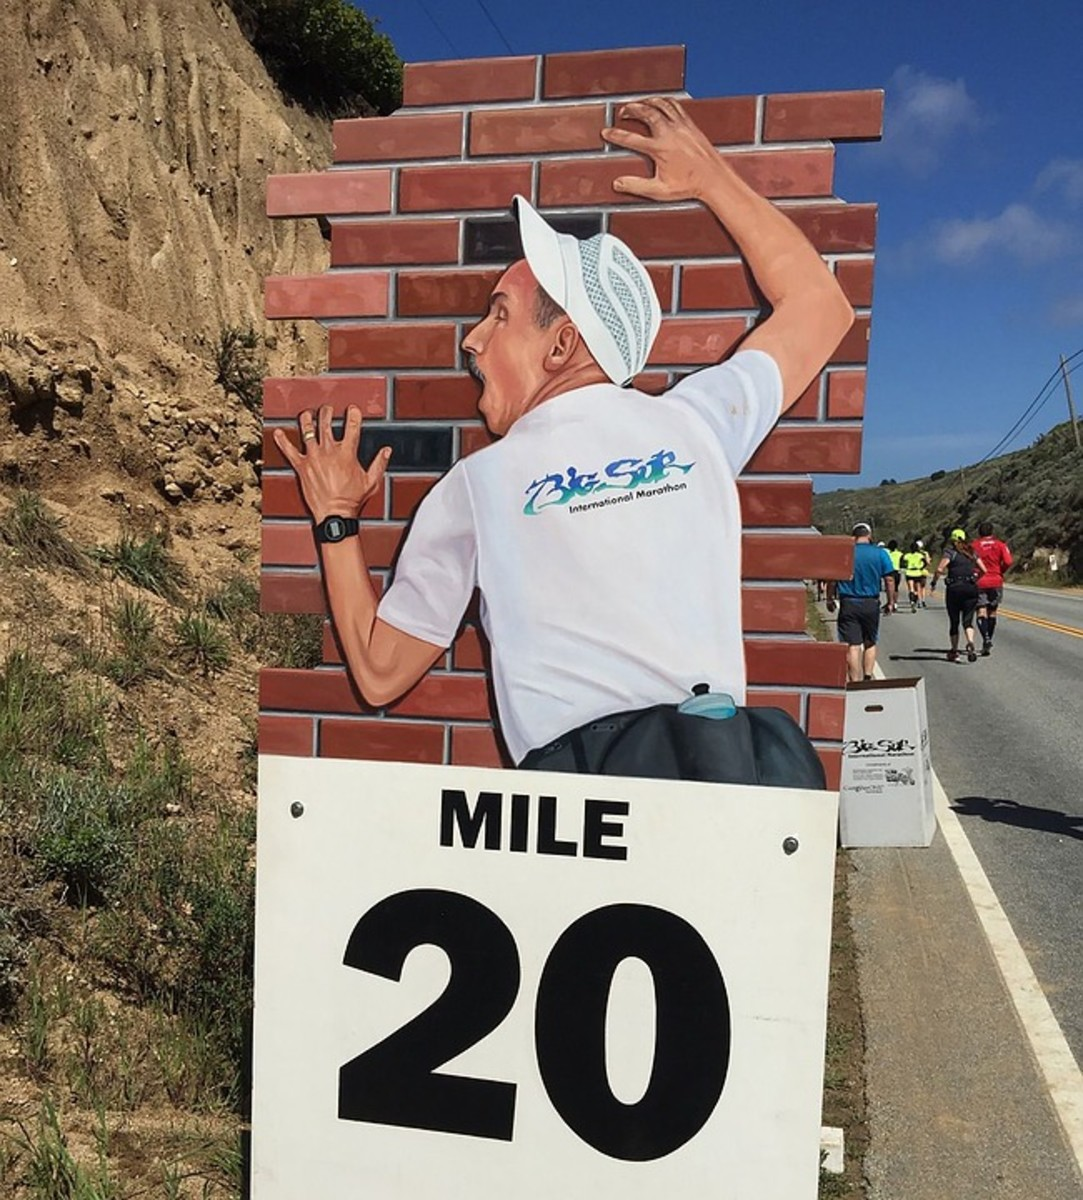 Even the infamous 'wall' at mile 20 can be overcome with mental grit and mental practice.